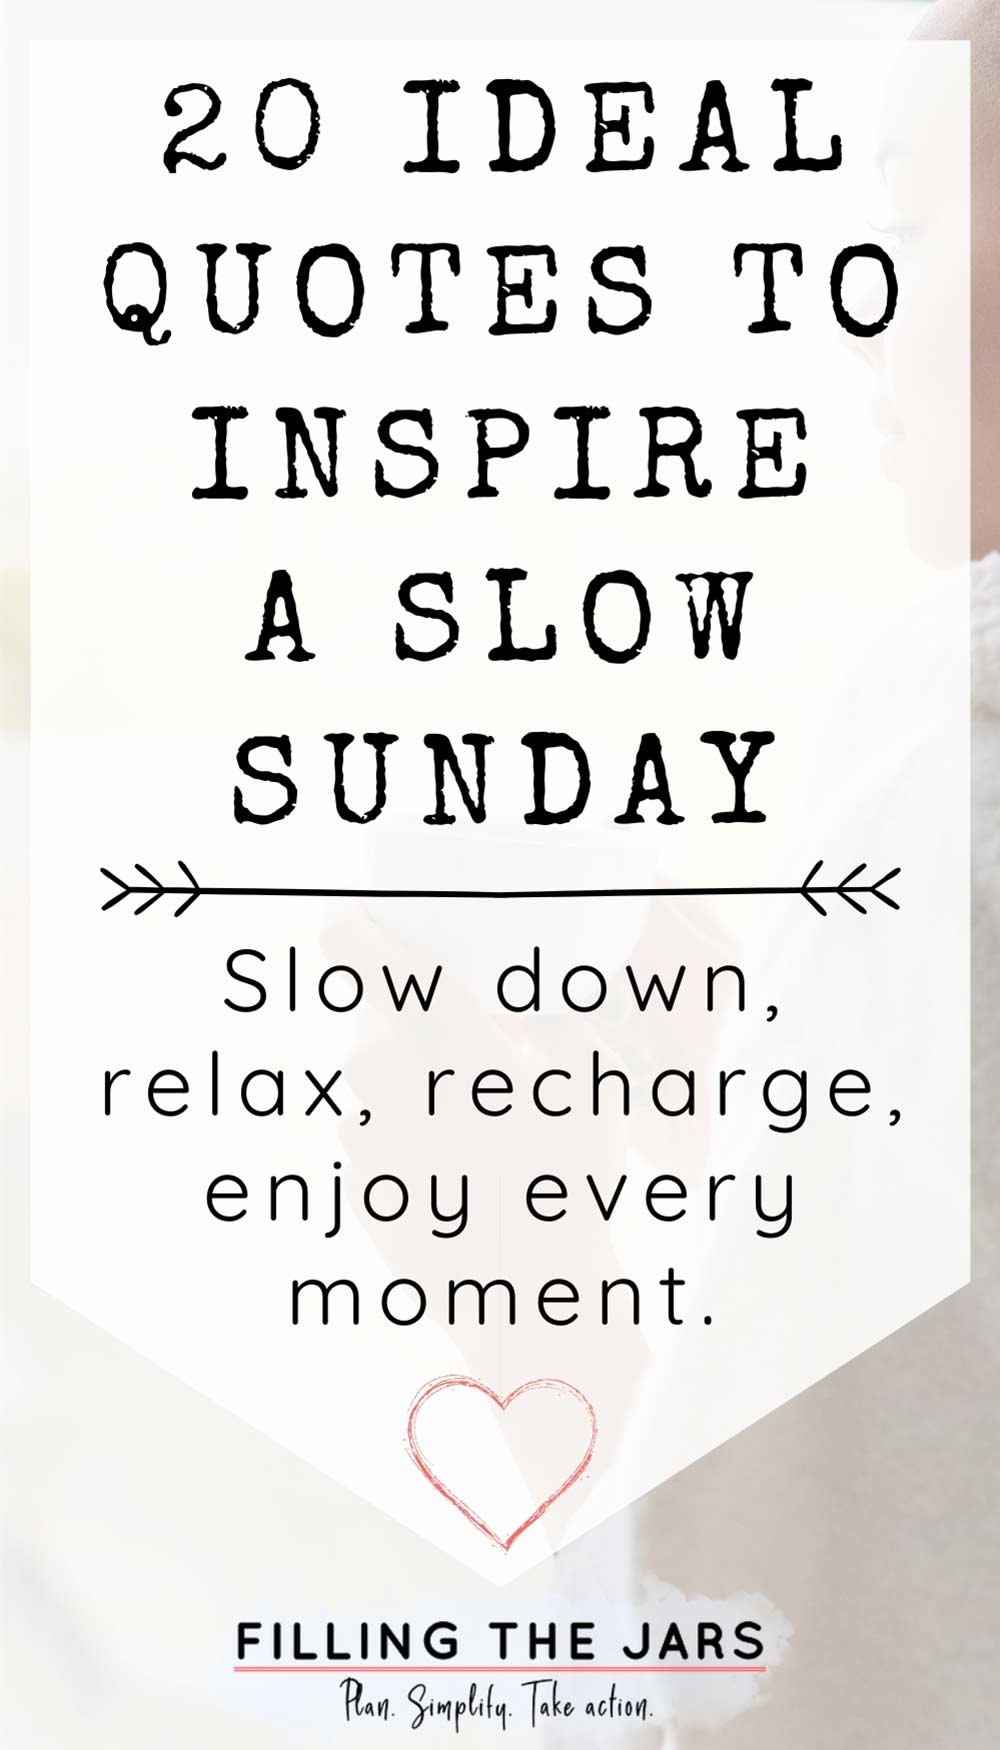 Text ideal quotes to inspire a slow Sunday on white background over image of woman looking out window and holding a coffee mug.